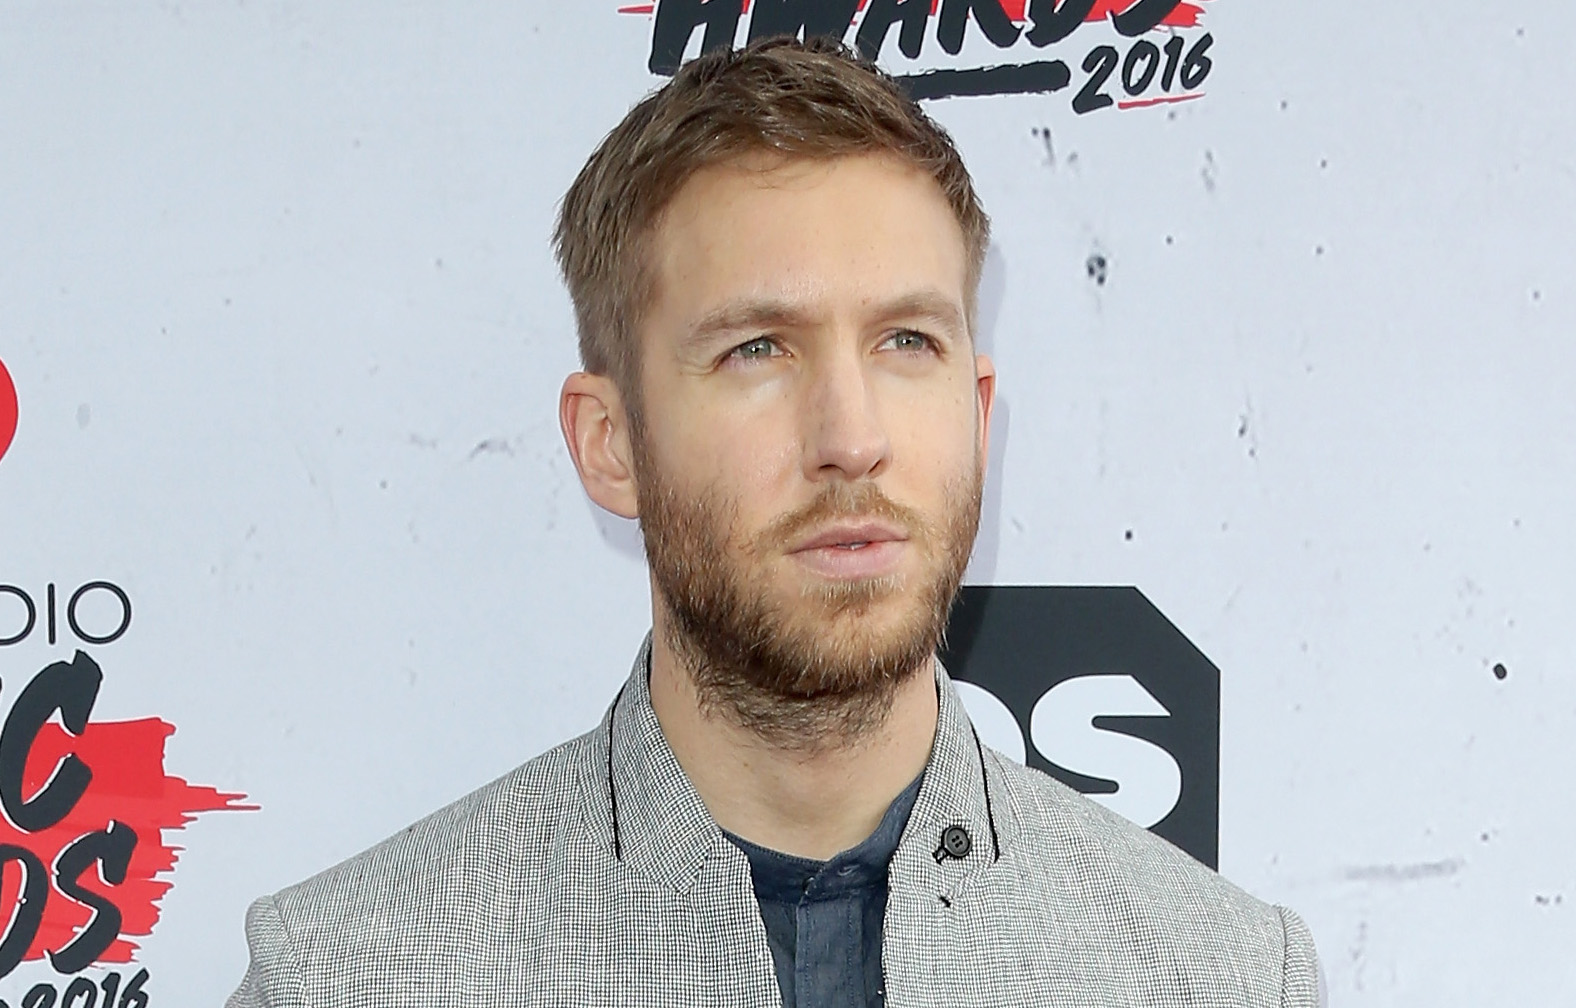 Calvin Harris was hospitalized following a car crash Friday night